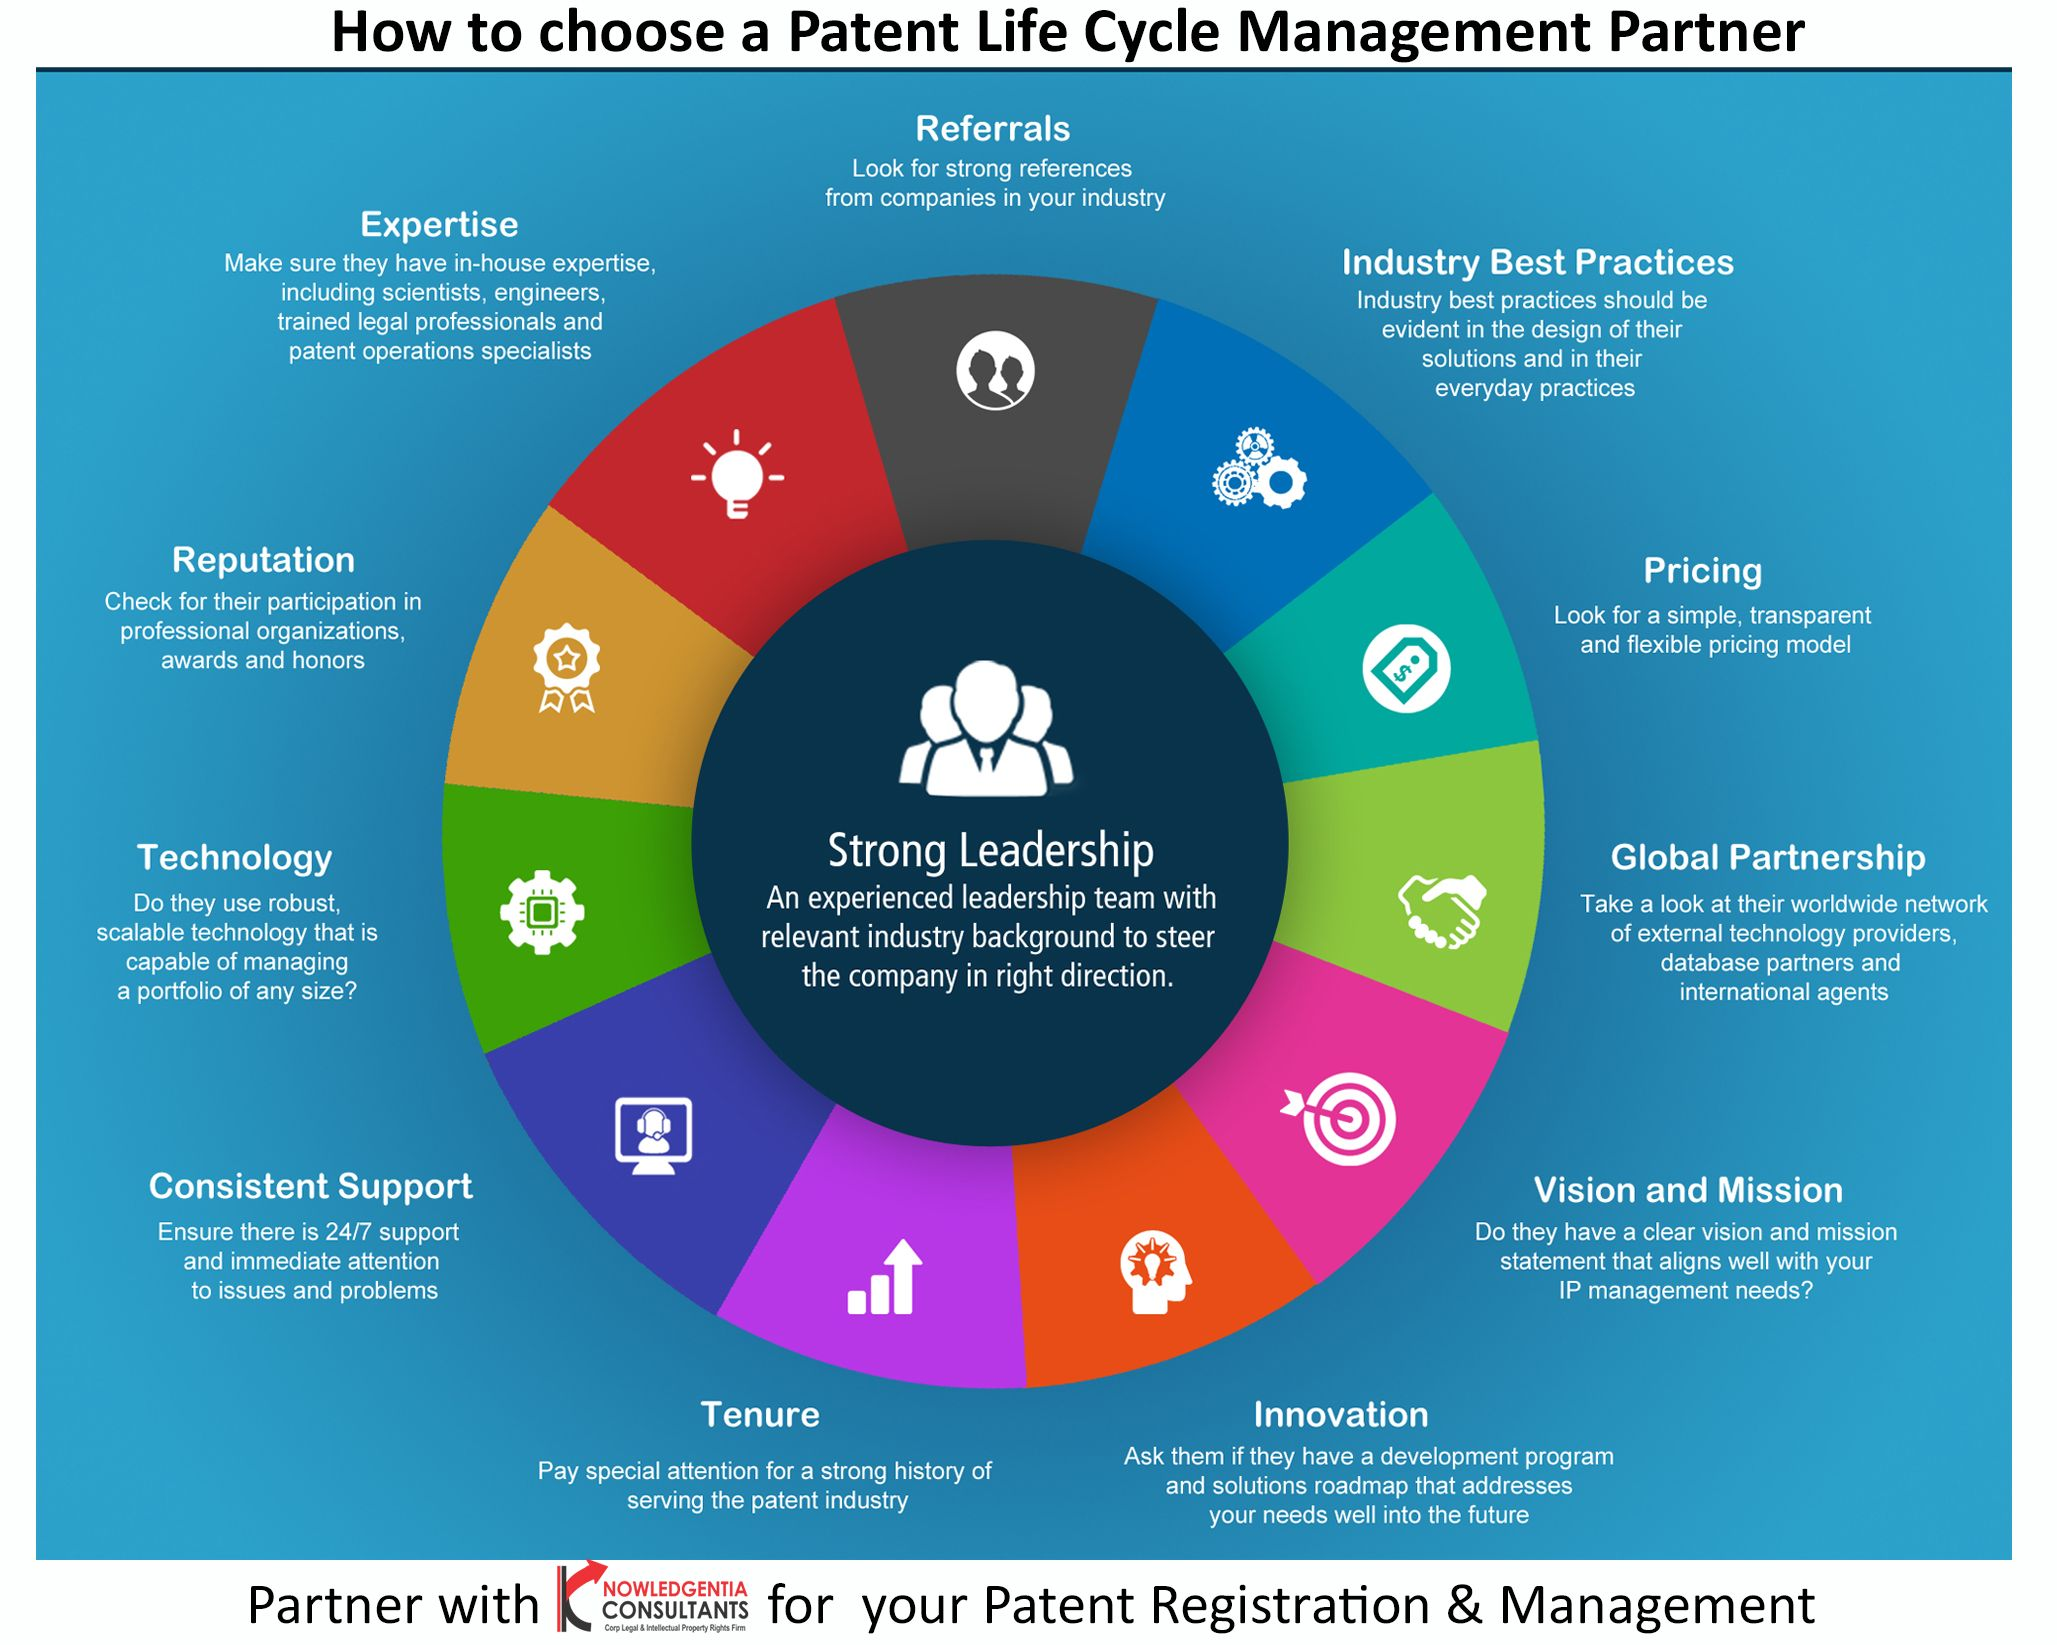 Knowledgentia Consultants Is One Top Leading Patent Help Company